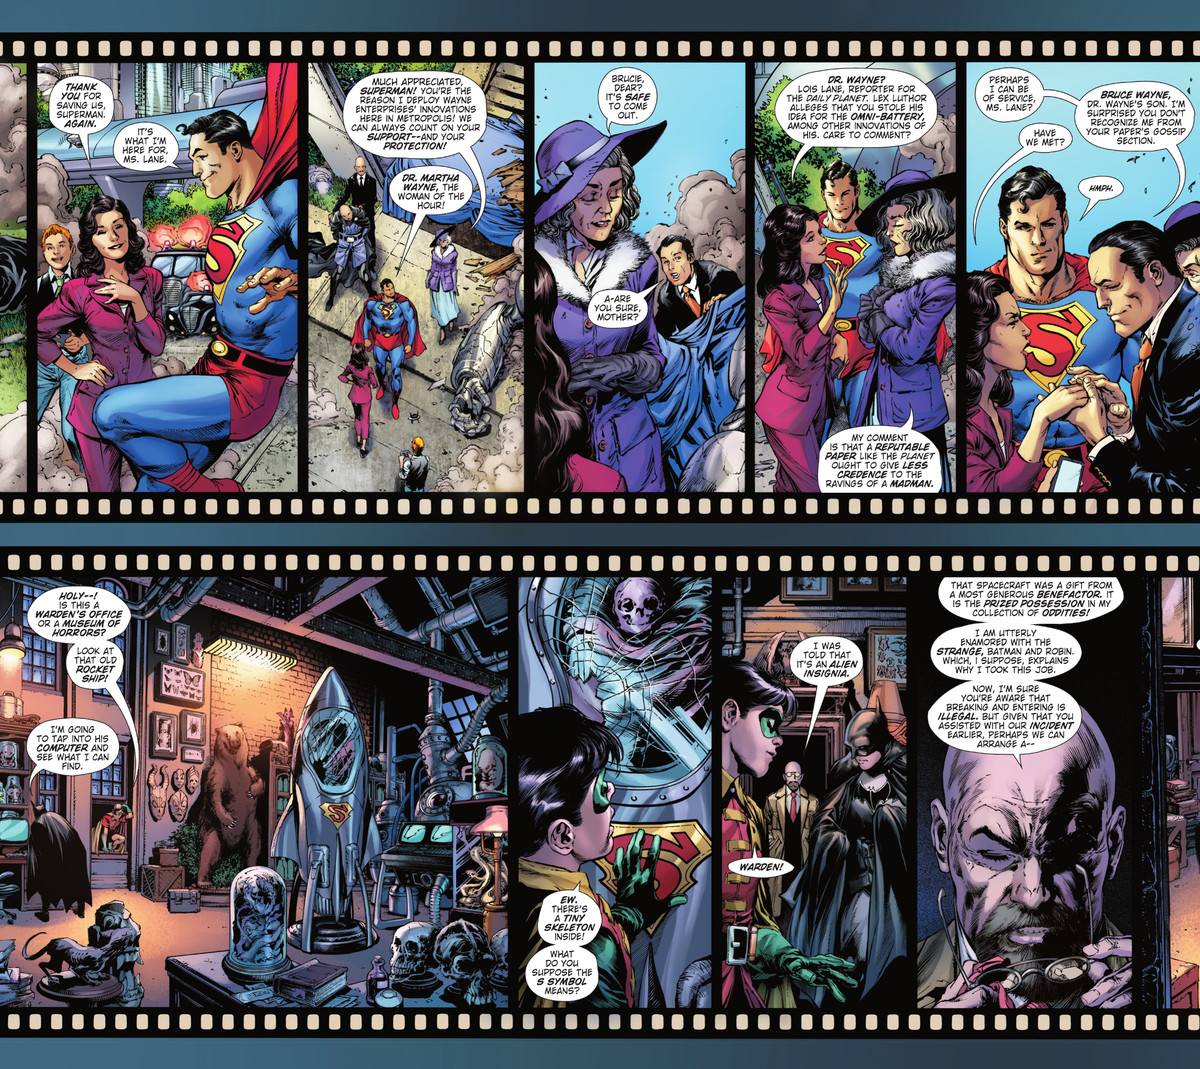 Two strips of panels decorated like rolls of films stock spool horizontally across the top and bottom of a double page spread. The top tells the story of Superman meeting Martha Wayne and her useless adult son Bruce, the bottom shows Batman and Robin exploring a room full of scientific curiosities, including a rocketship containing an infant's skeleton in Batman/Superman #16, DC Comics (2021).